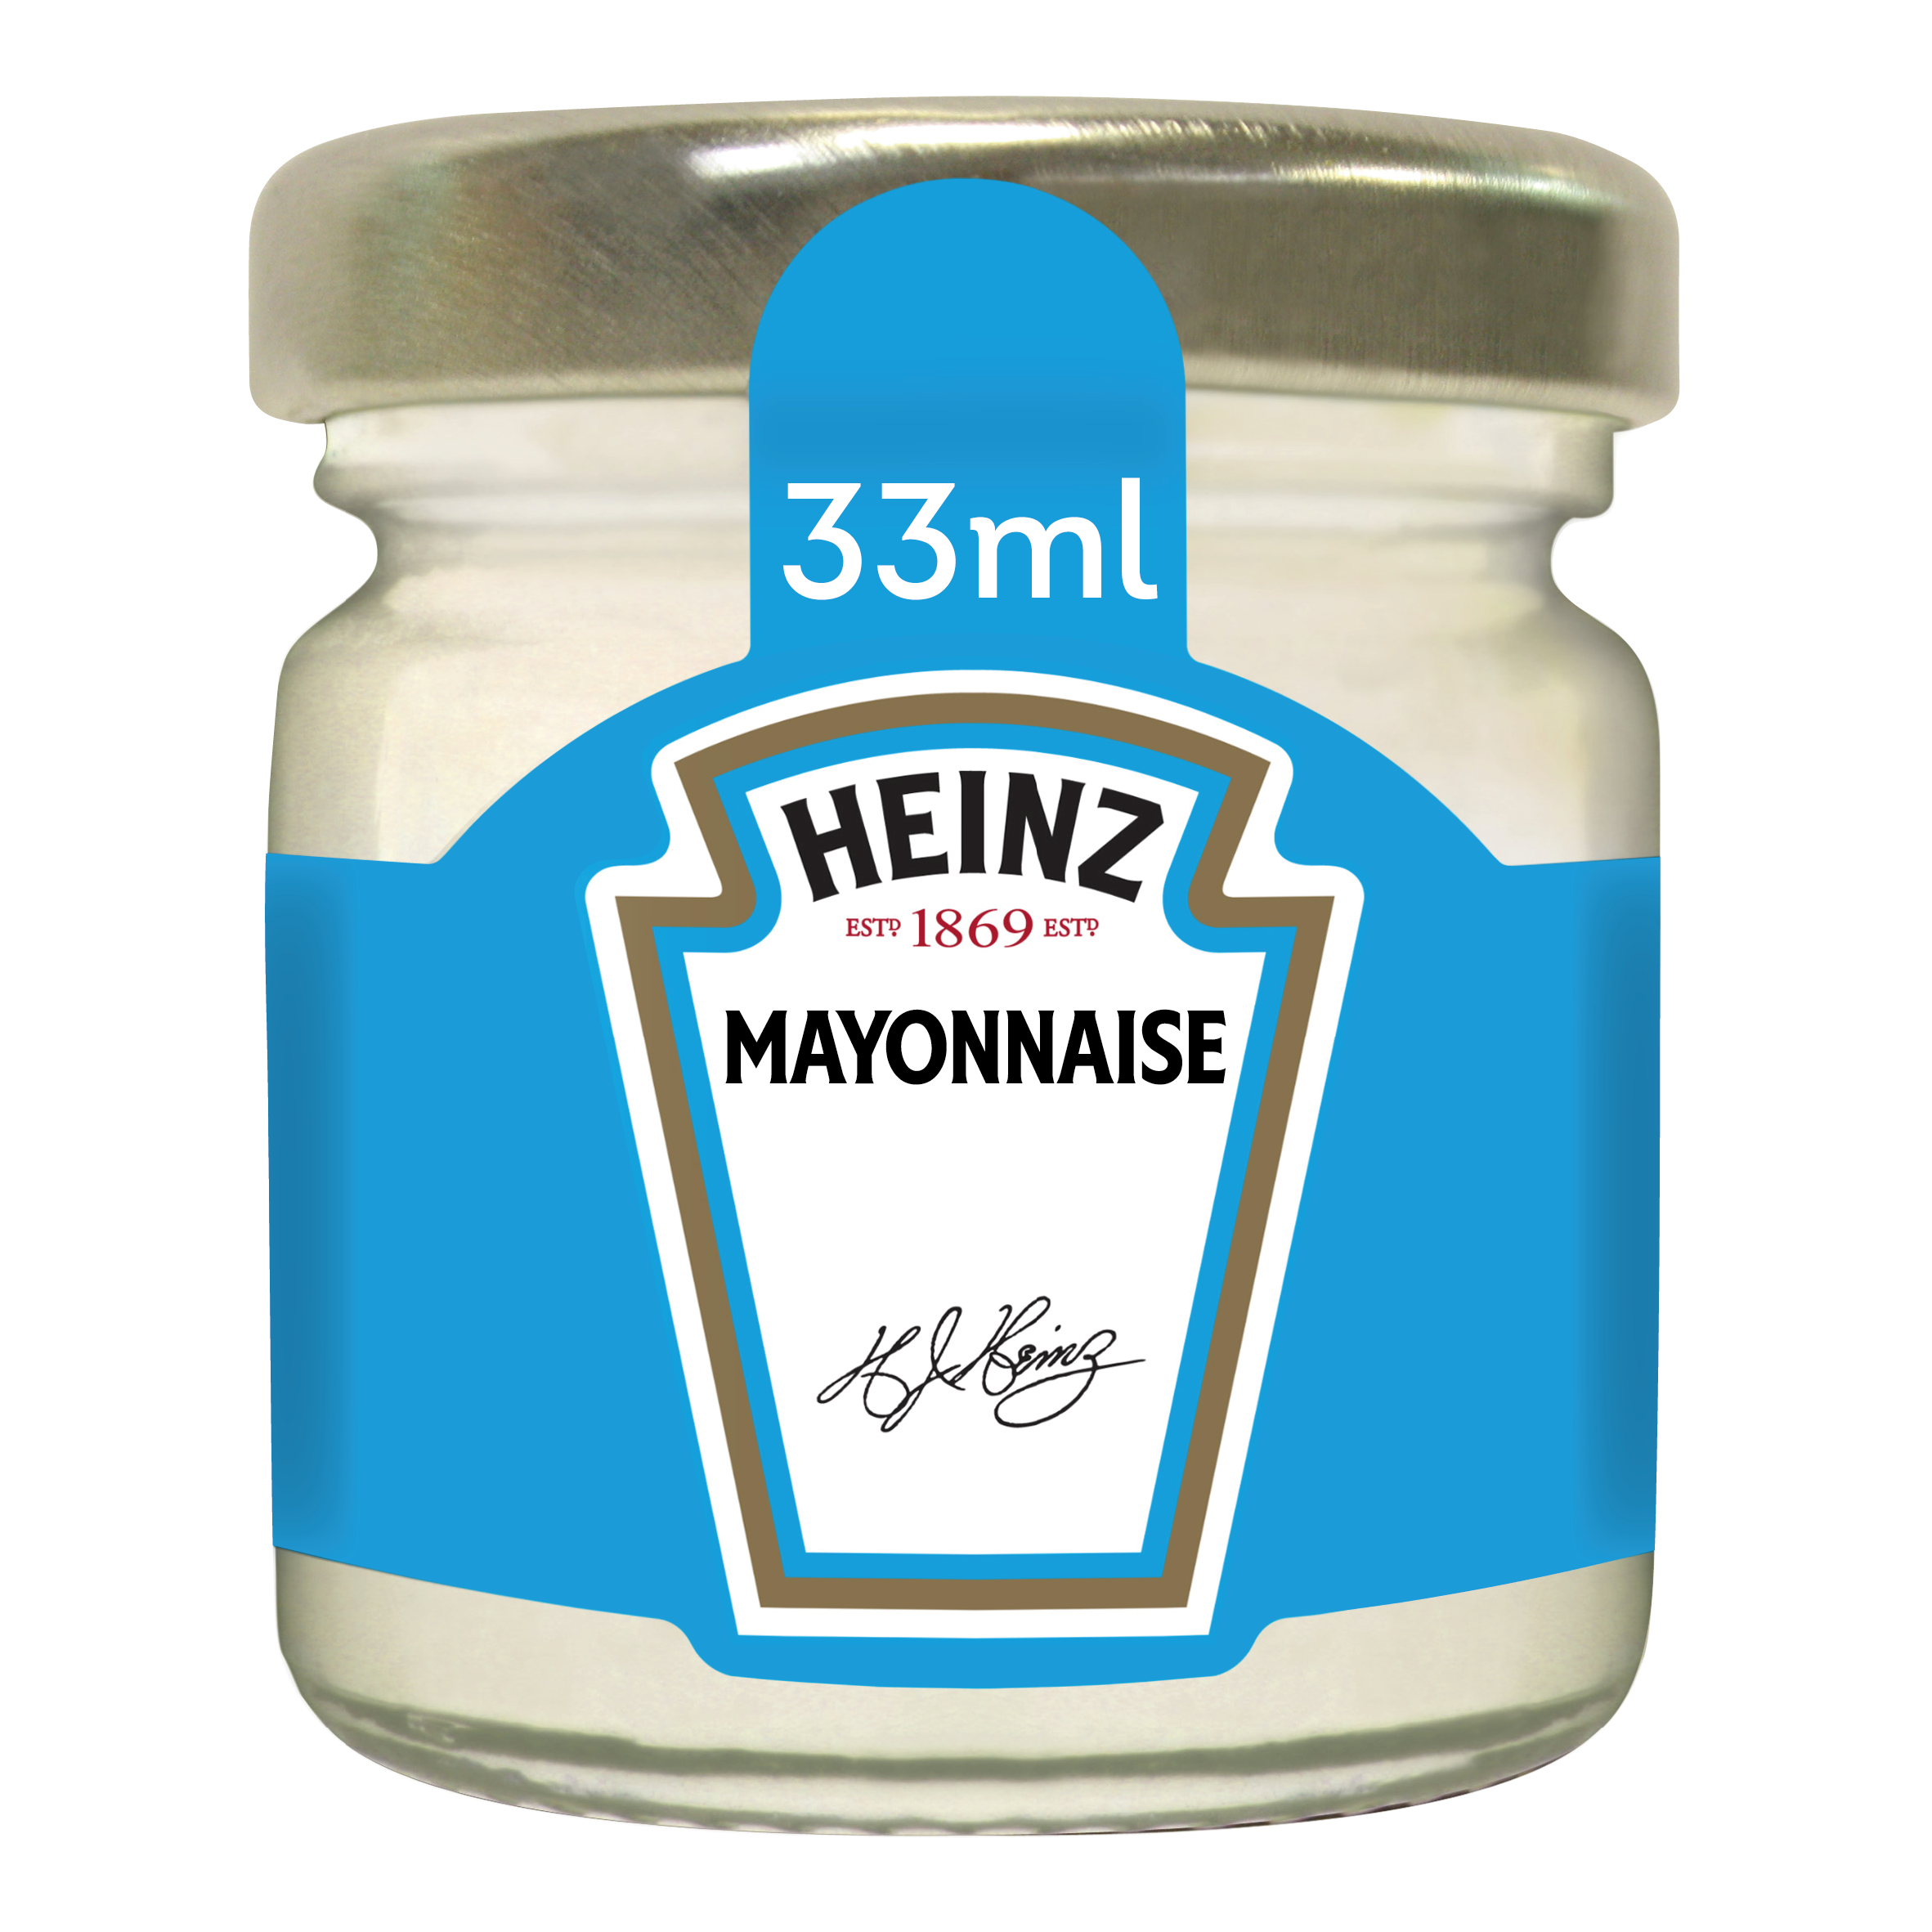 Heinz Mayonnaise 33ml Premium Mini Jars image